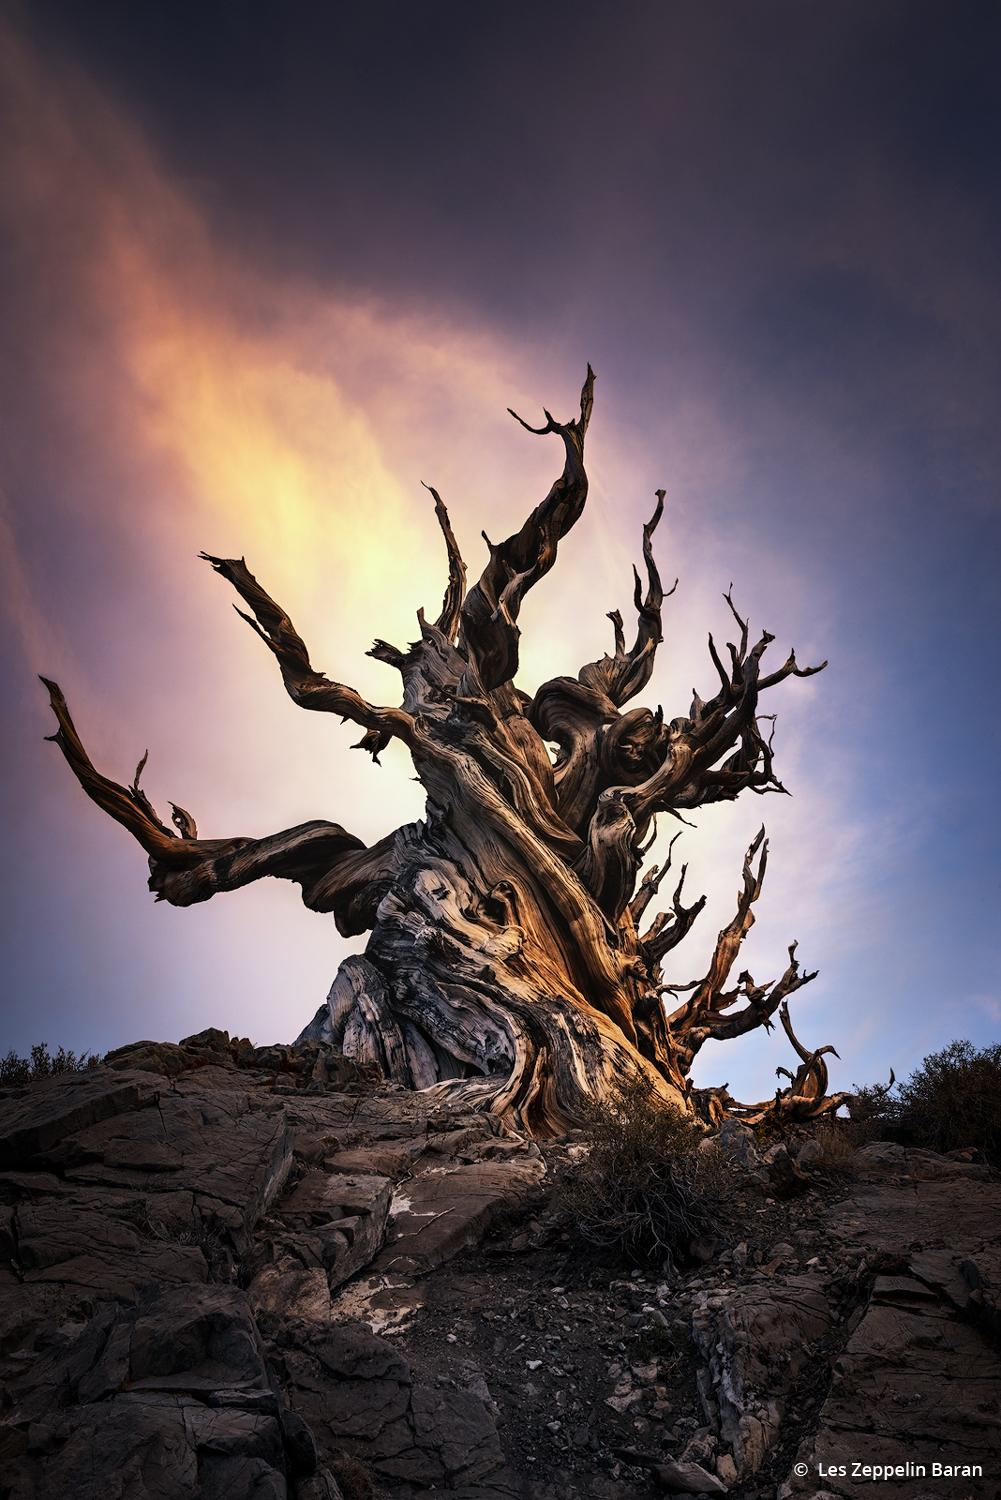 """Today's Photo Of The Day is """"Guardian of the Sky"""" by Les Zeppelin Baran. Location: Ancient Bristlecone Pine Forest, White Mountains, California."""